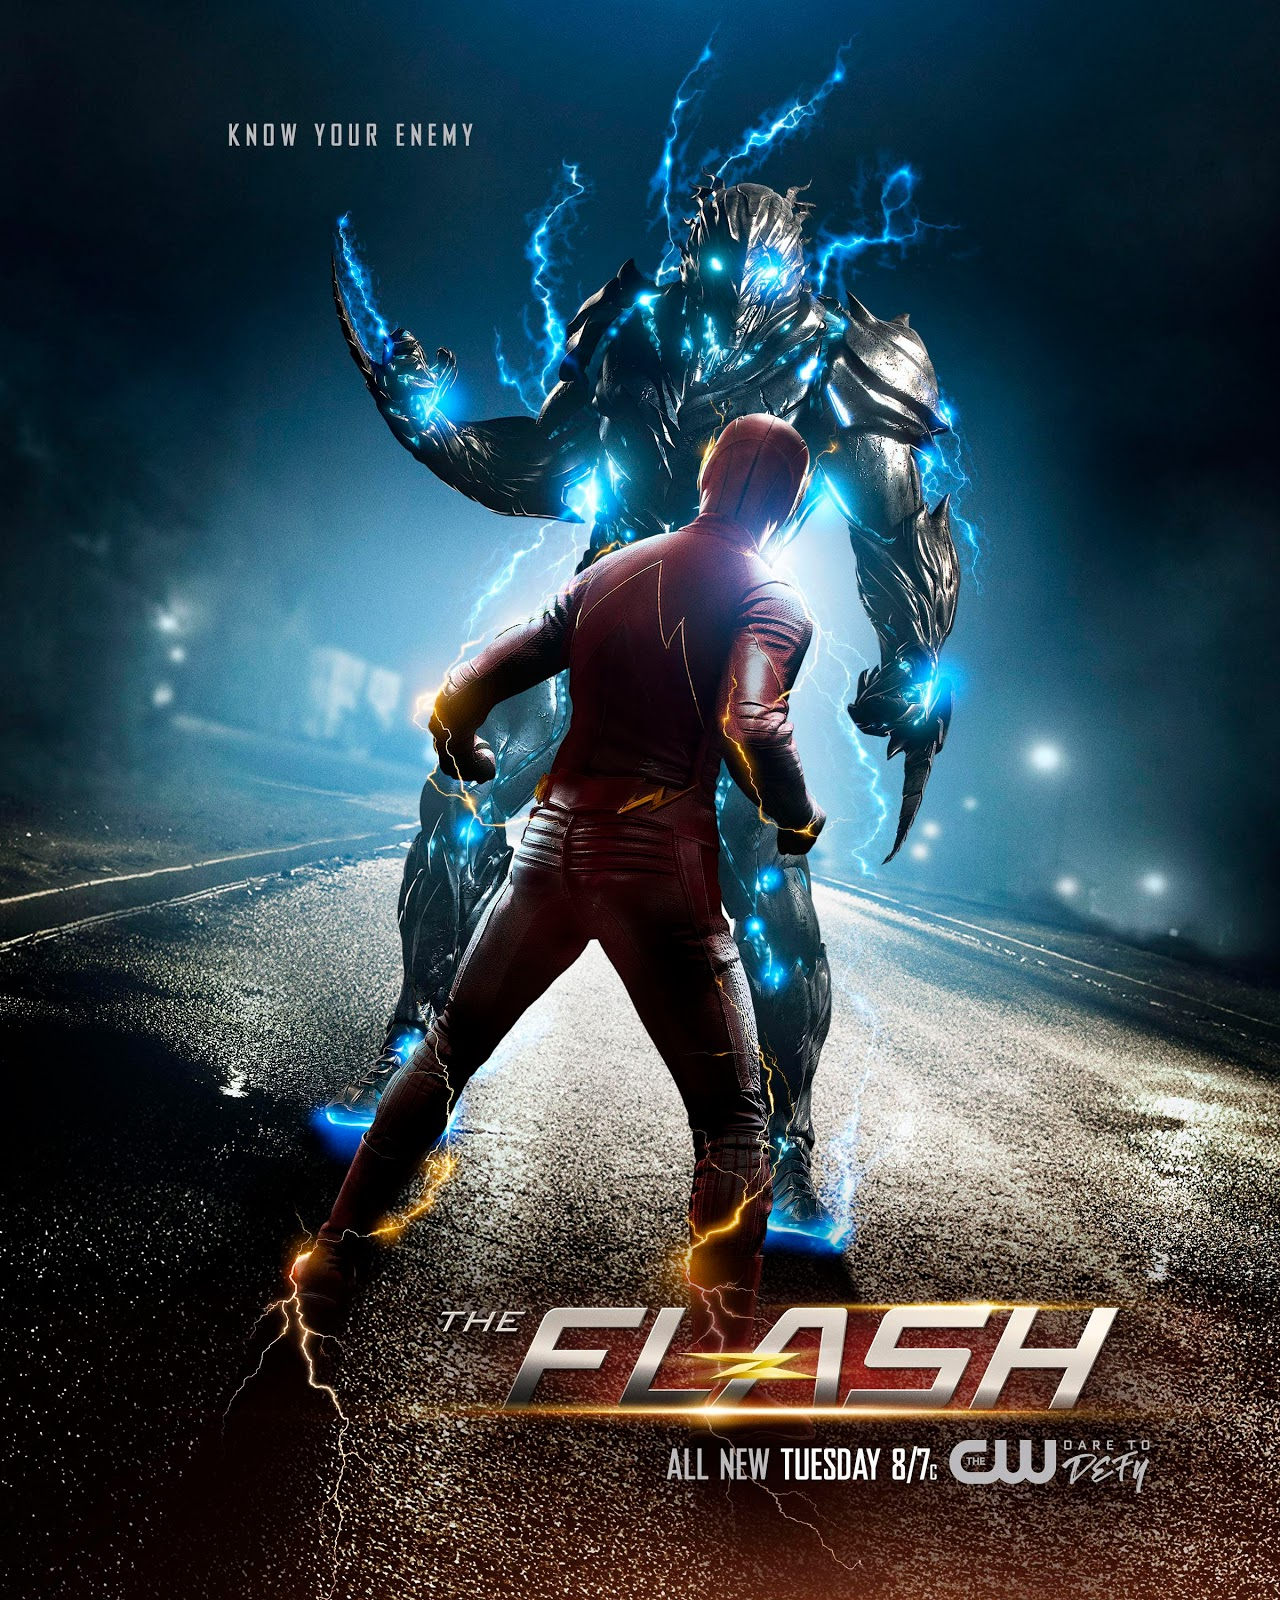 The Flash 3x19 Once and Future Flash poster